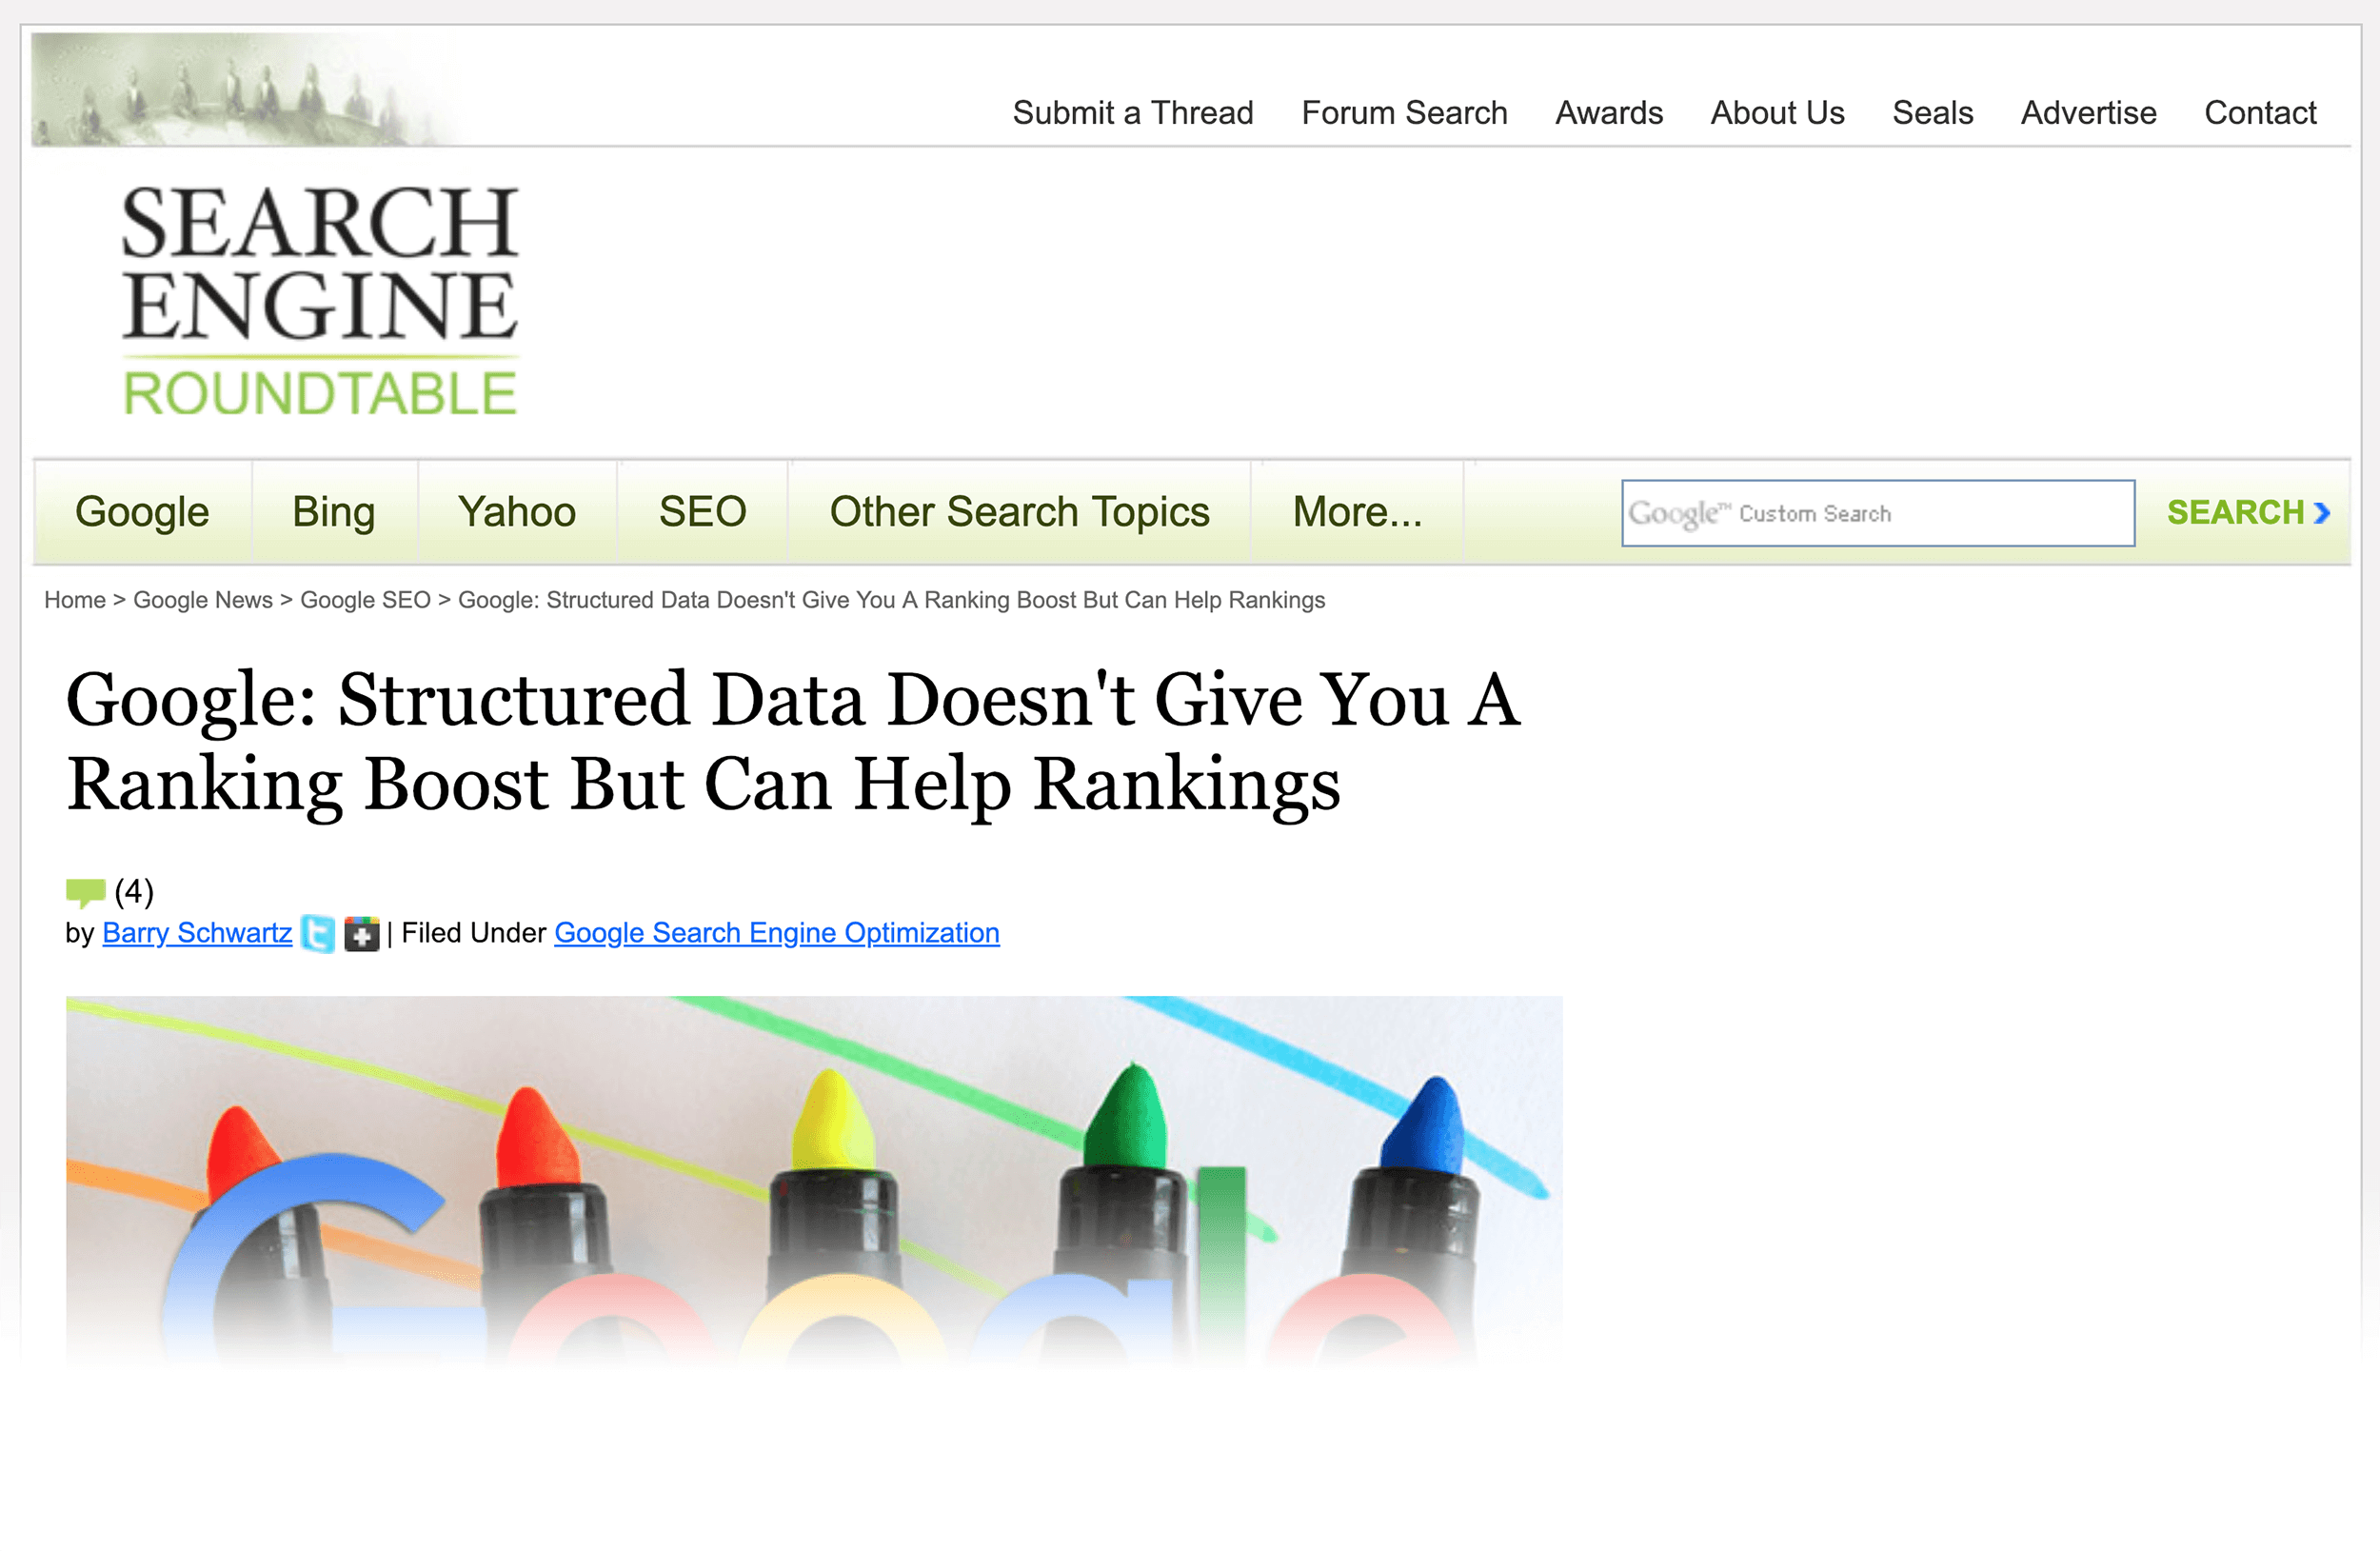 Google says that structured data is not a ranking signal